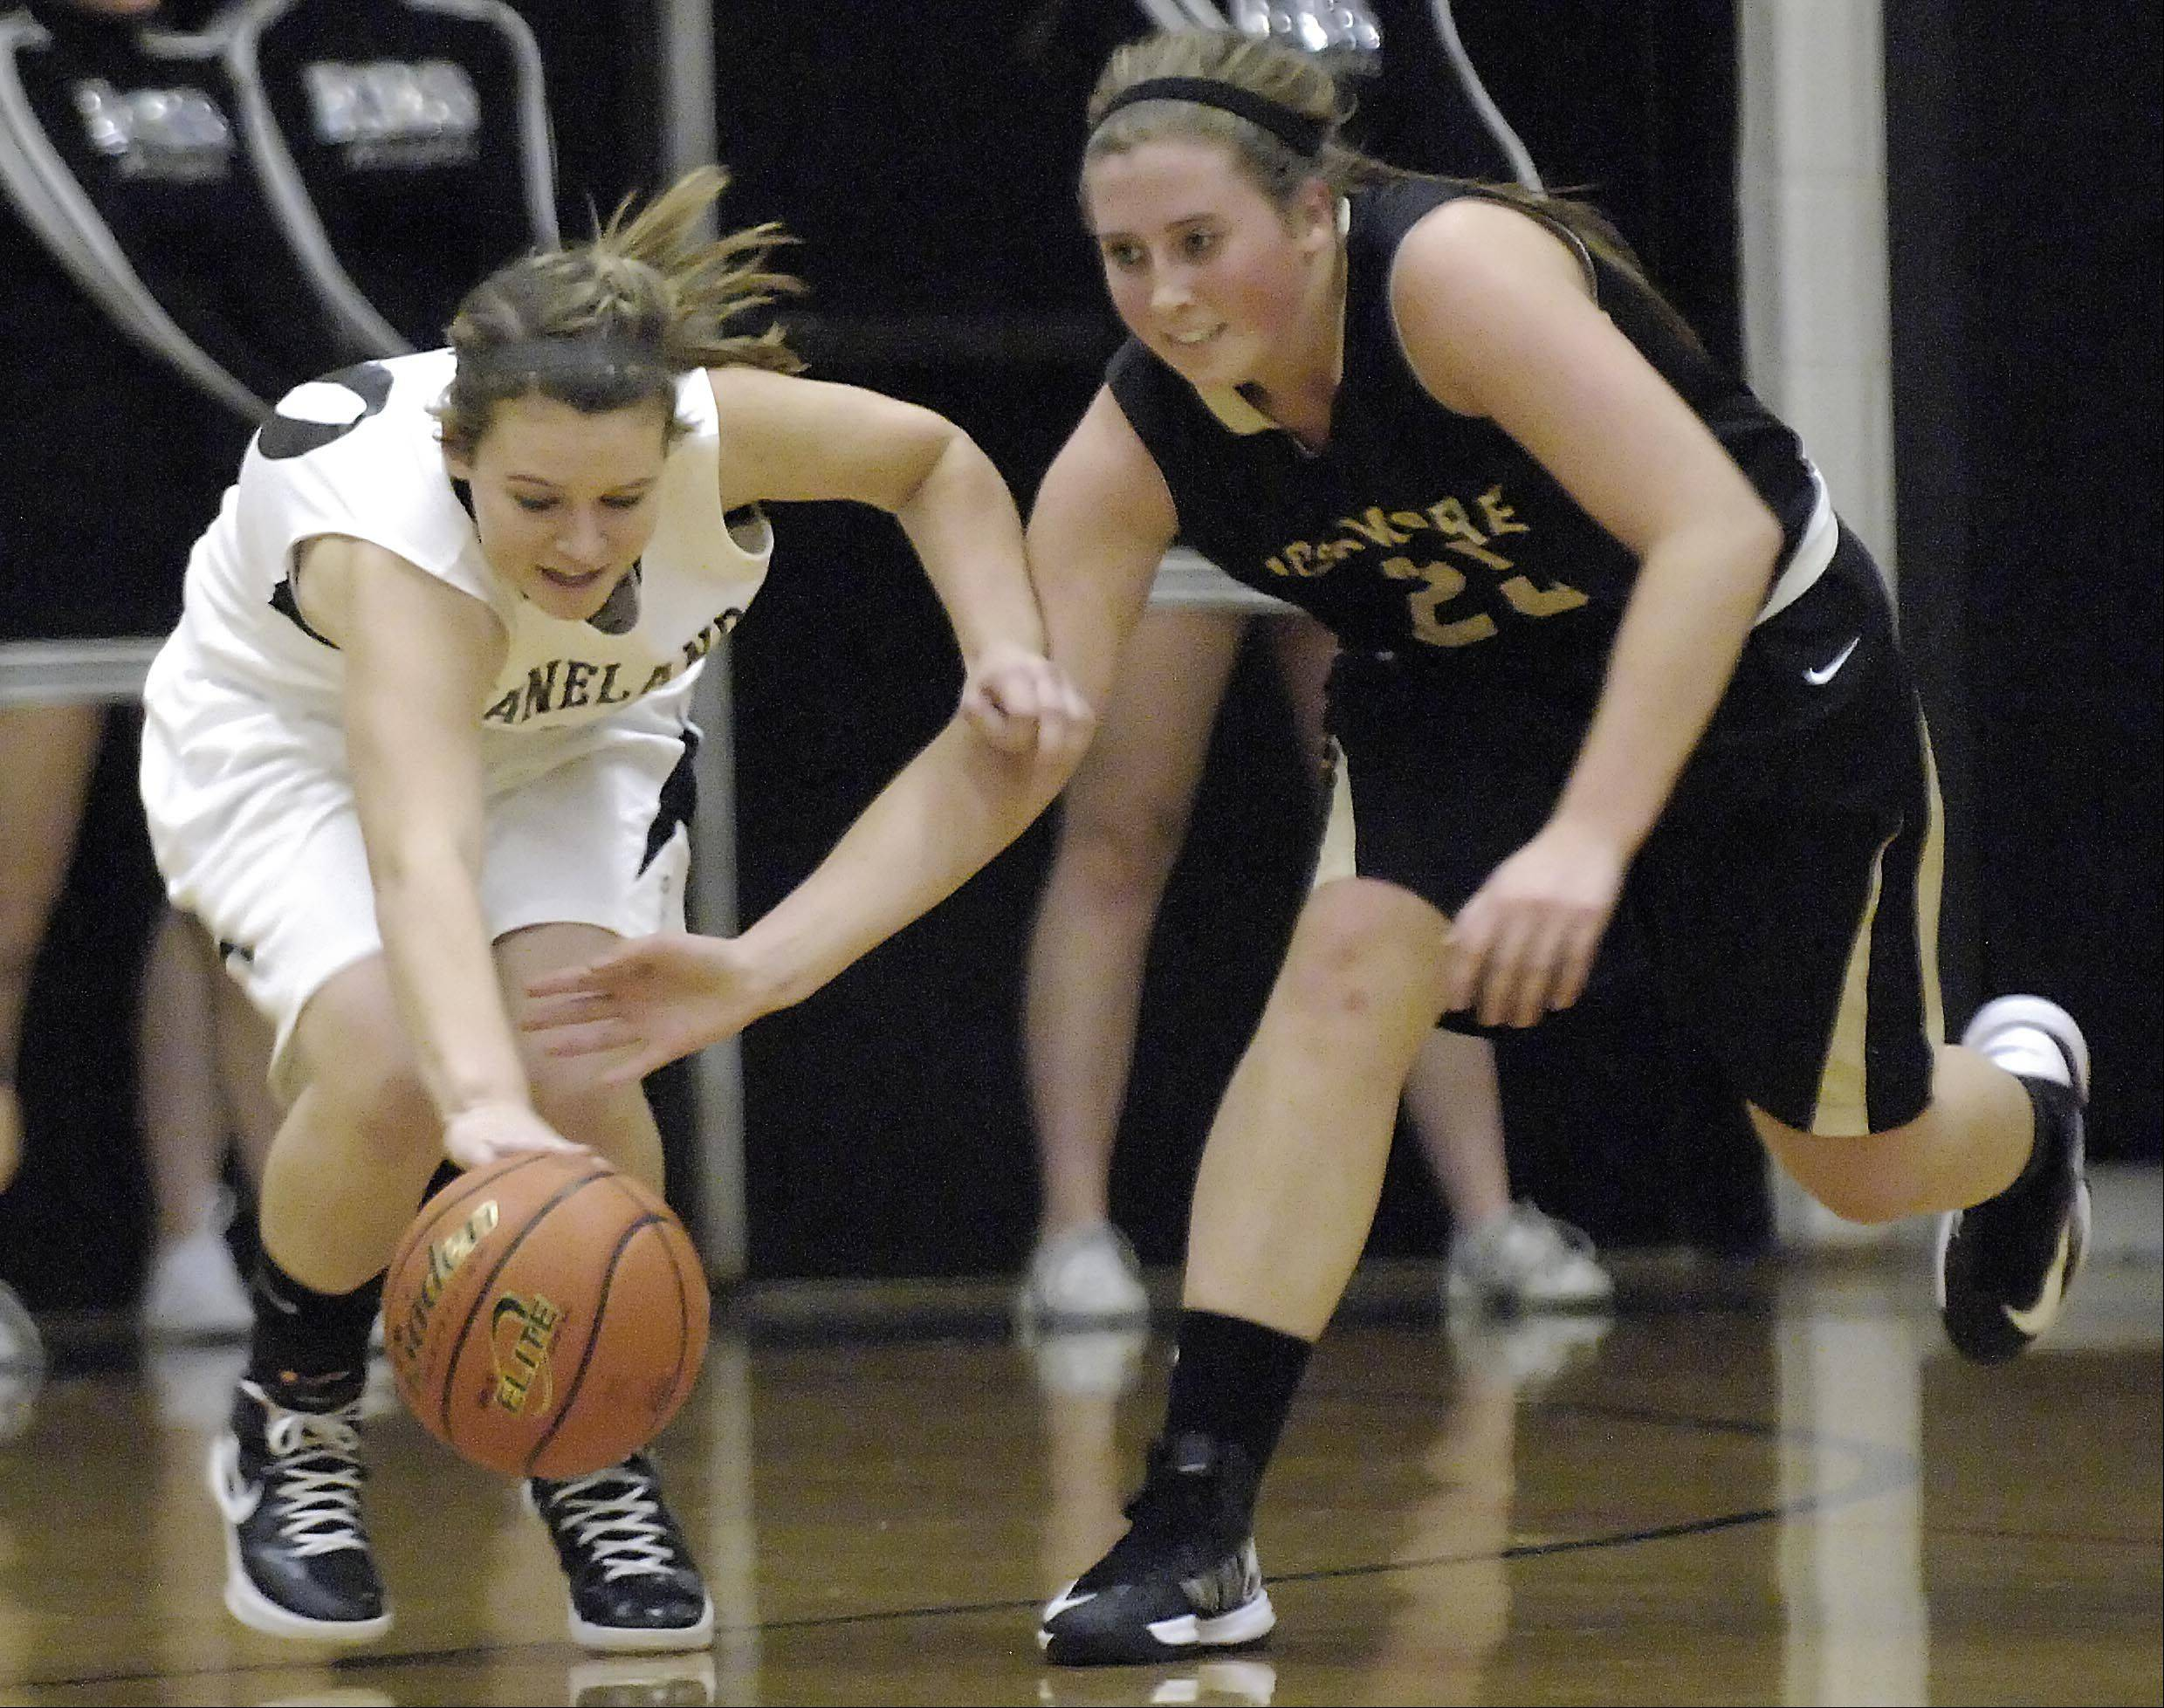 Kaneland's Allyson O'Herron gets to a loose ball ahead of Sycamore's Bailey Gilbert.